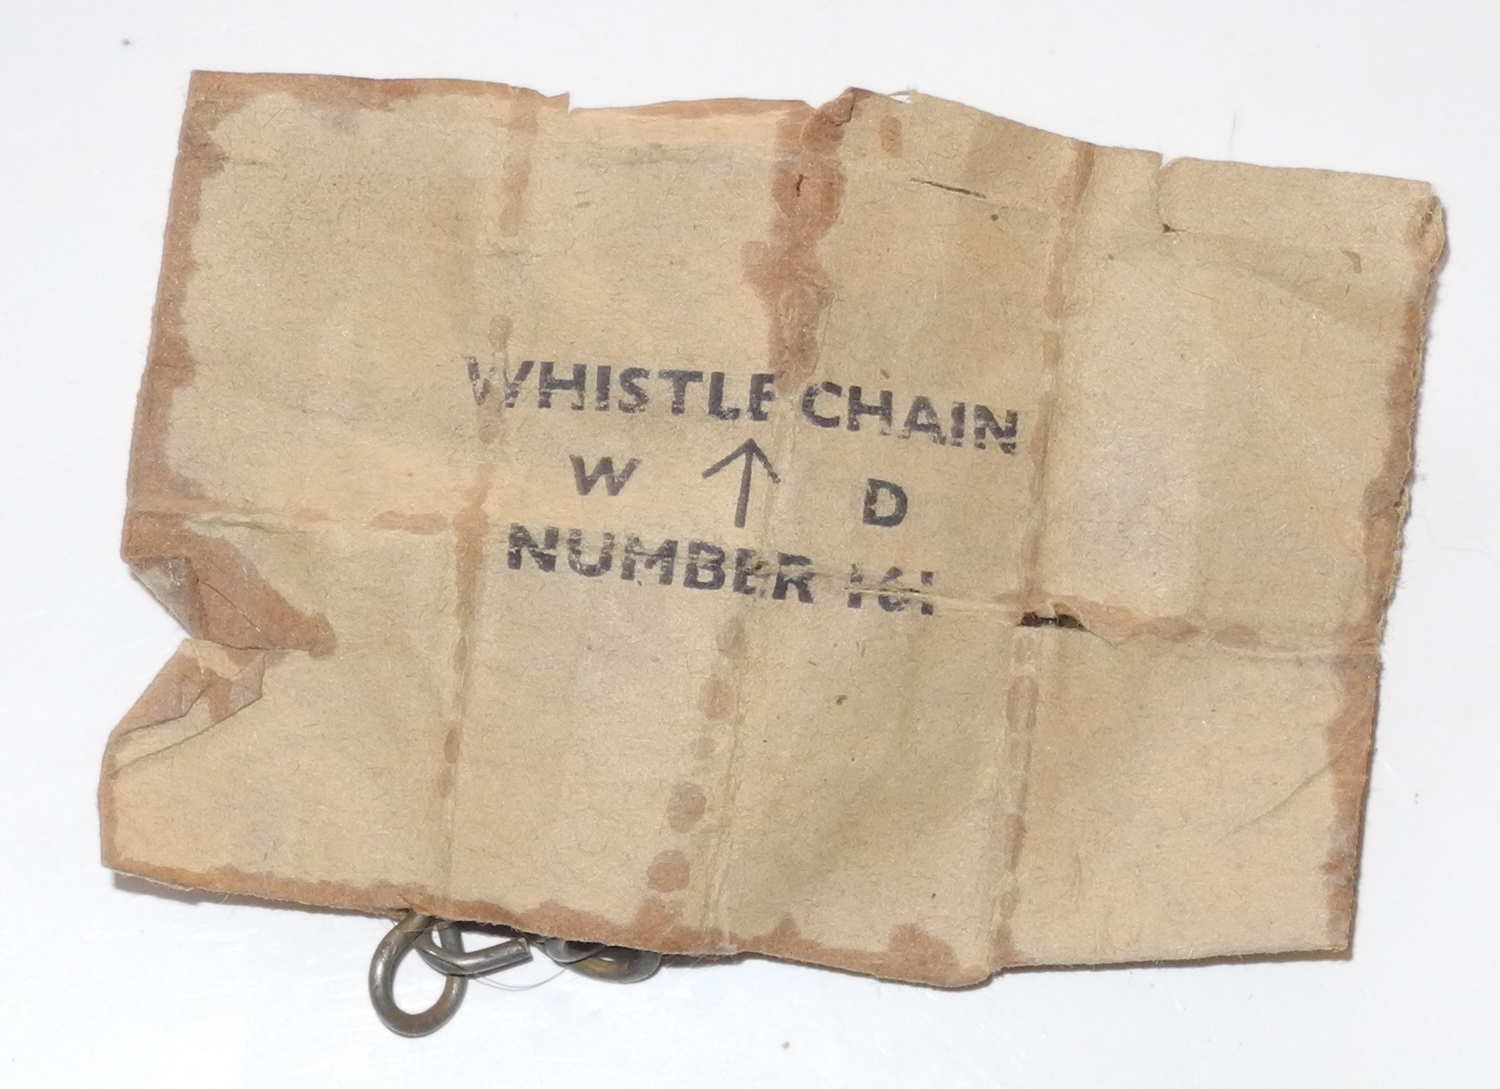 Whistle chain with paper packet